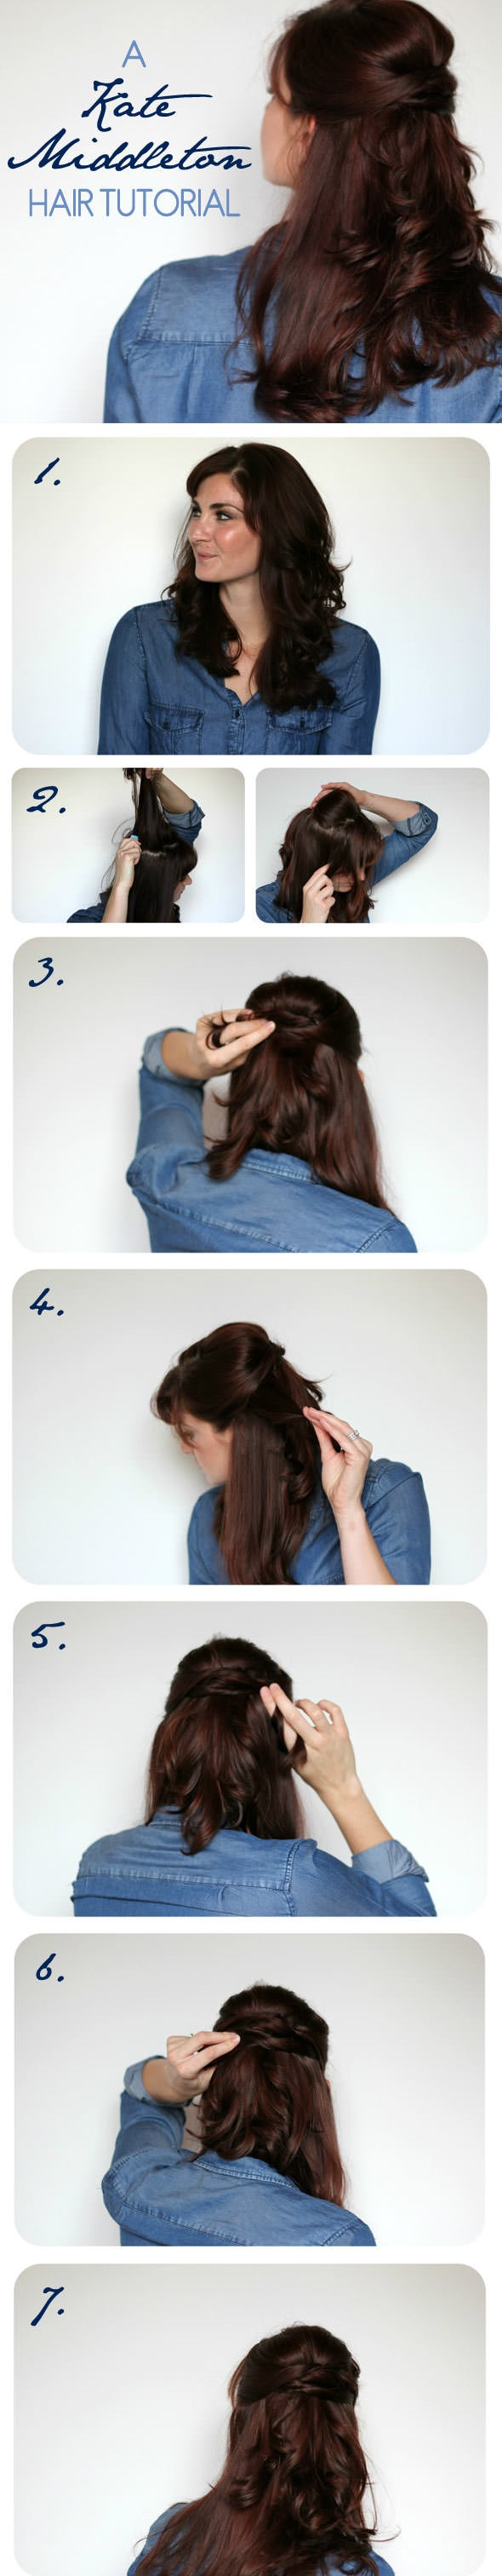 16 Super Easy Hairstyle Tutorials To Try Now